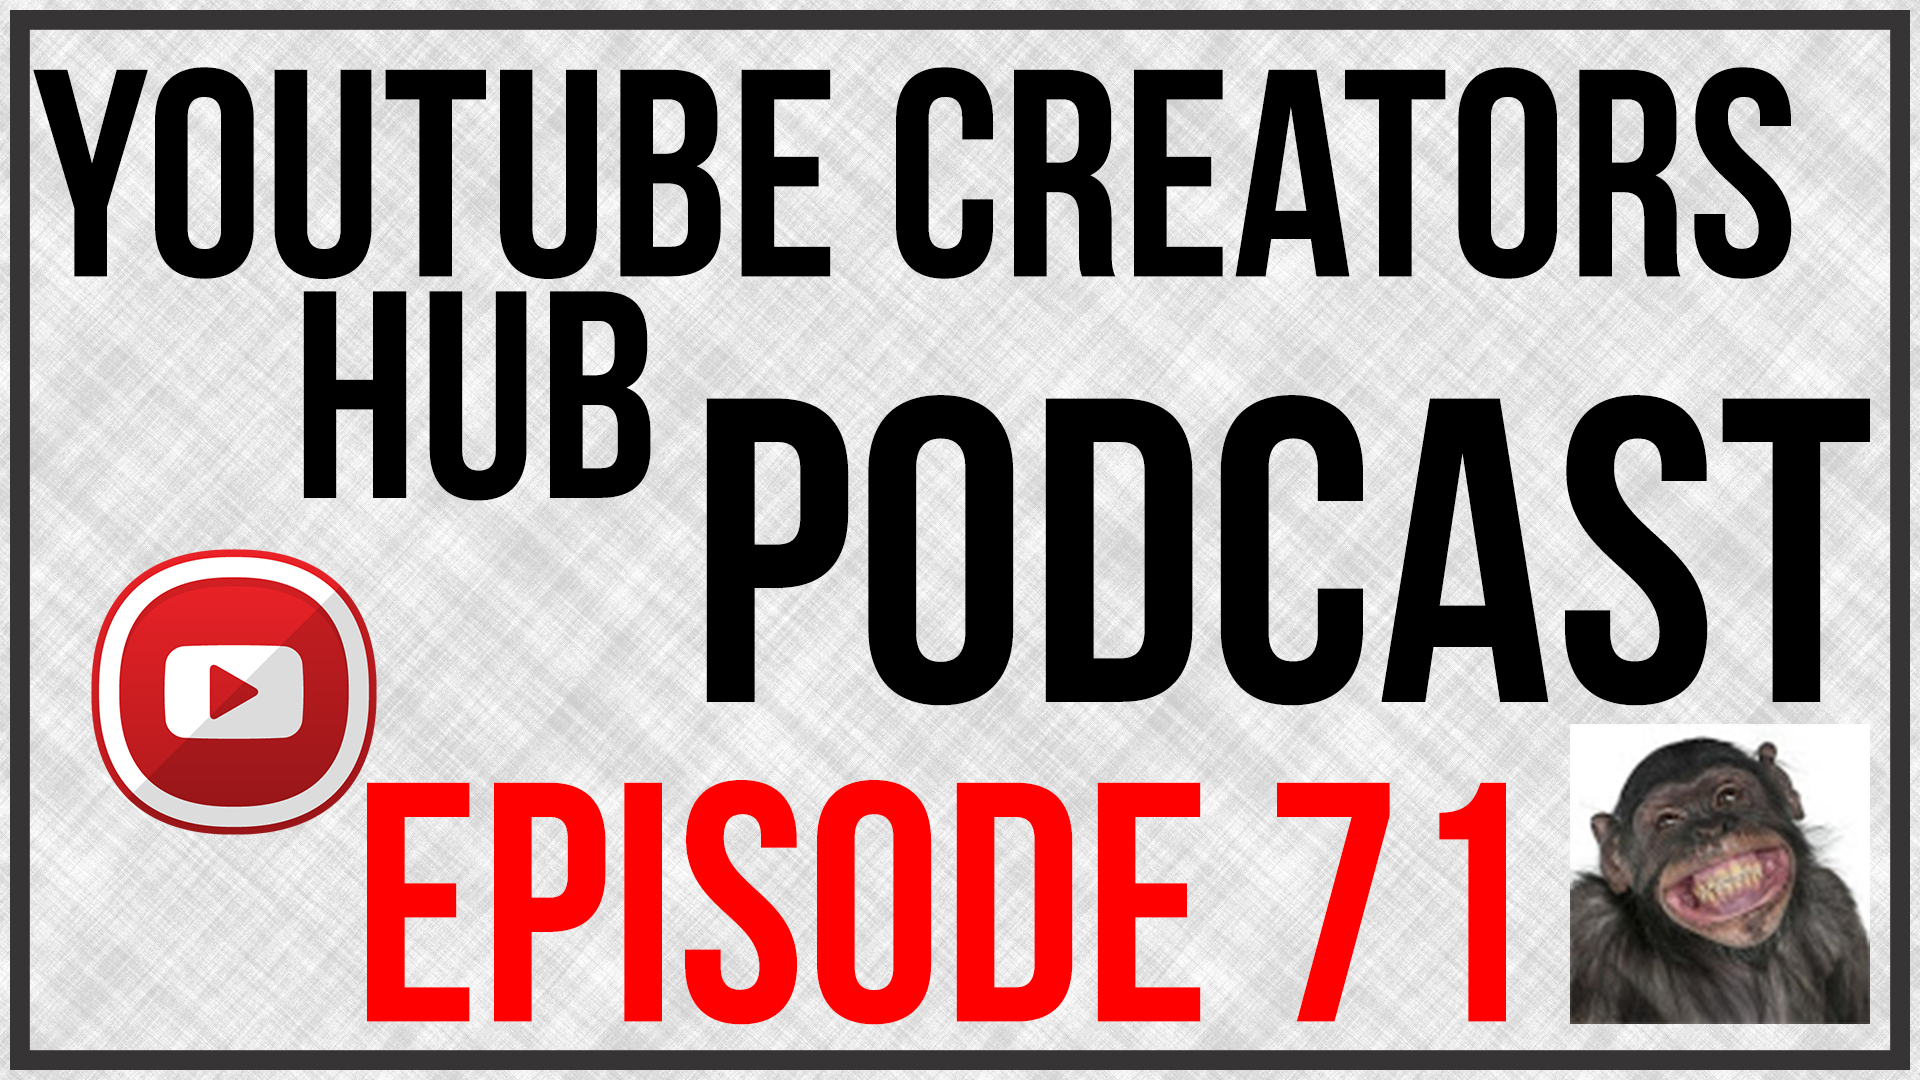 YouTube Creators Hub Podcast Episode 71